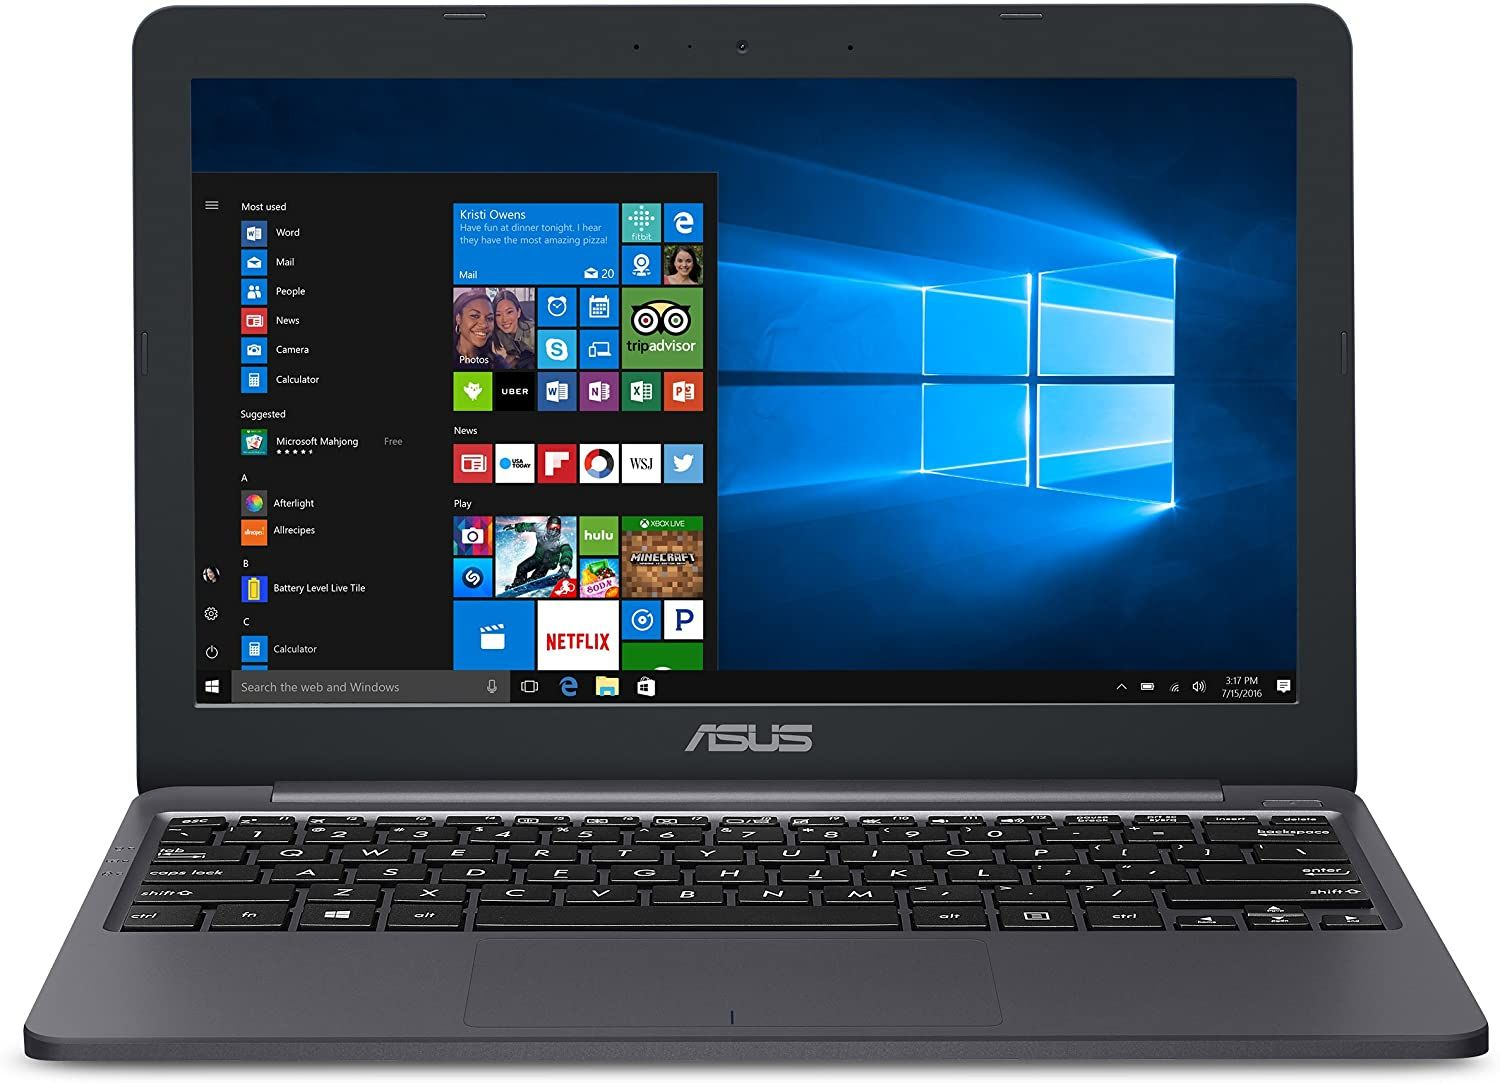 Asus Vivobook L203ma Laptop 11 6 Hd Display Intel Celeron Dual Core Cpu 4gb Ram 64gb Storage In 2020 Asus Laptop Best Laptops Touch Screen Laptop